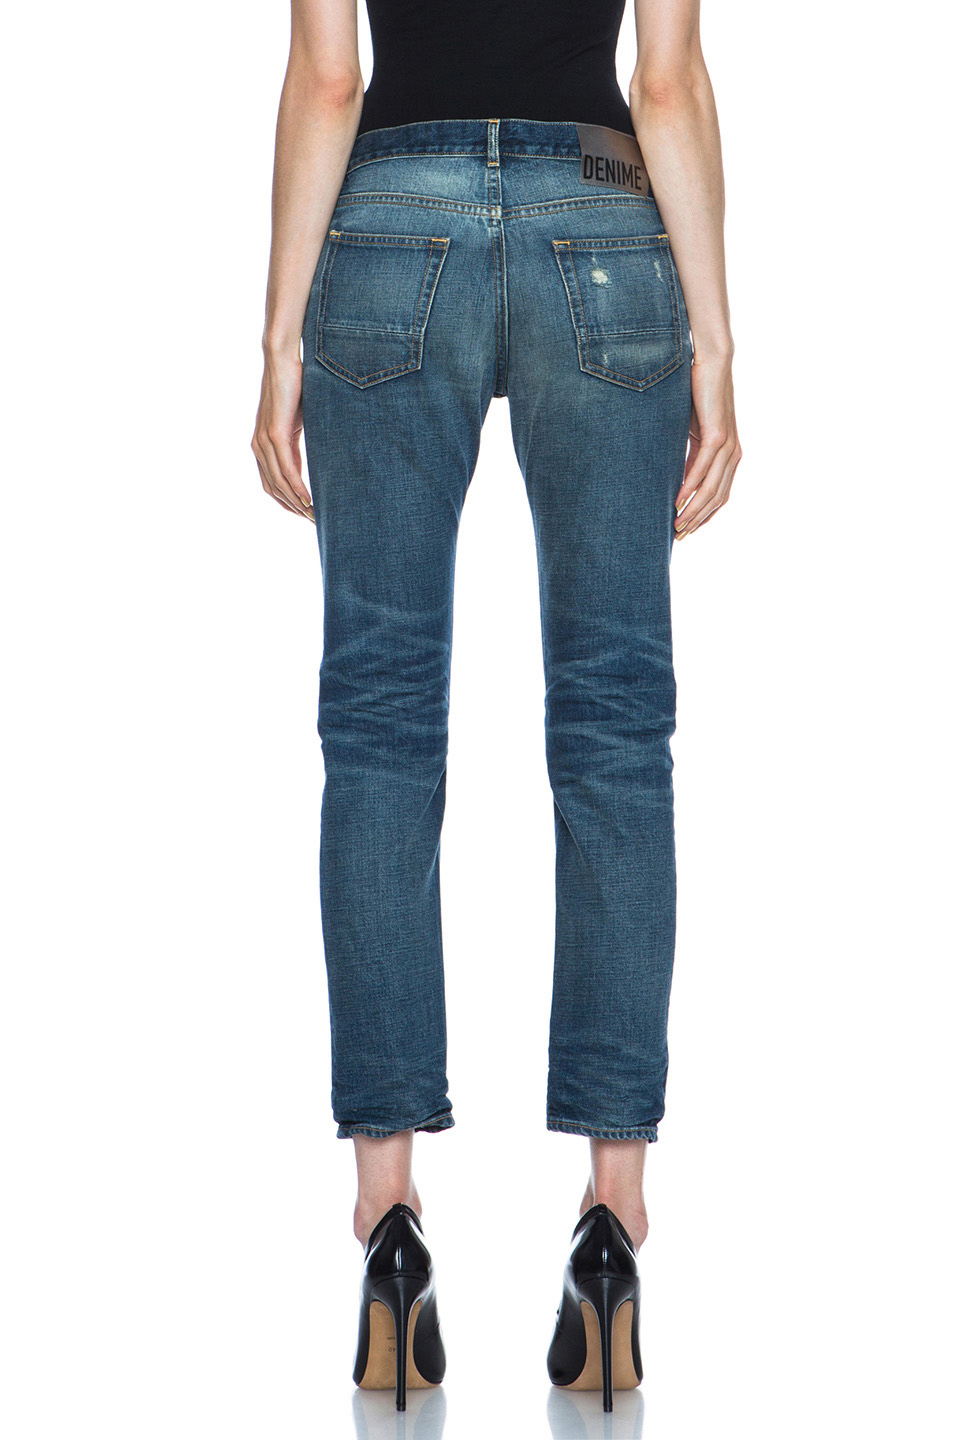 Jeans medium wash in blue